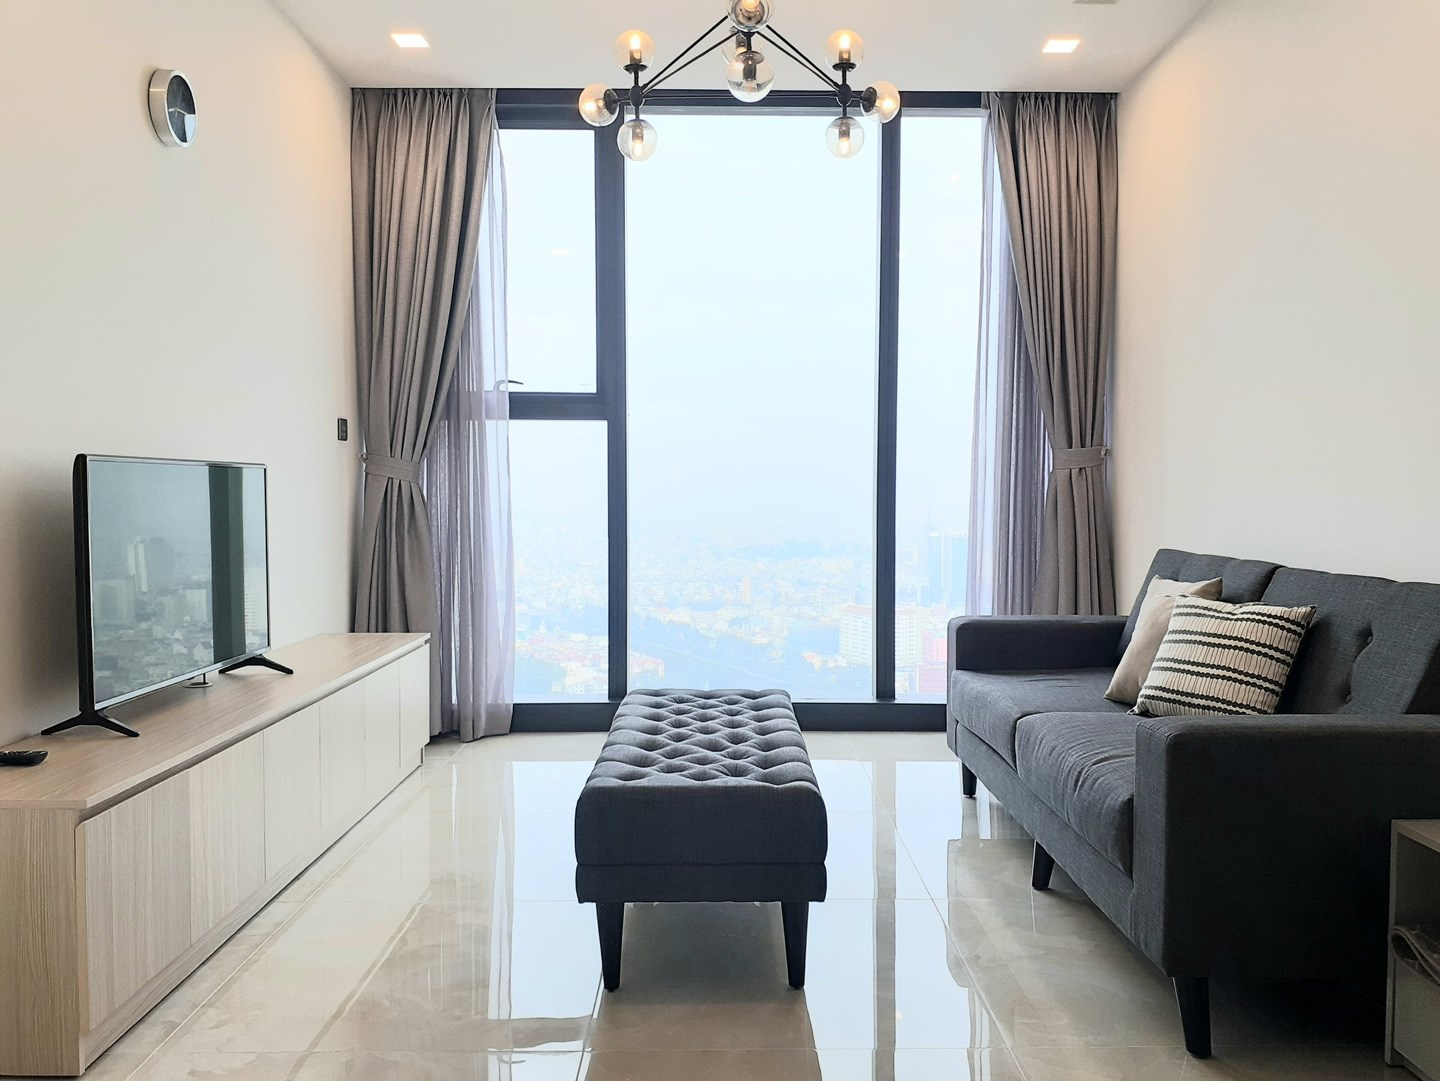 VGR97962 - Vinhomes Golden River Apartment For Rent & Sale Ho Chi Minh